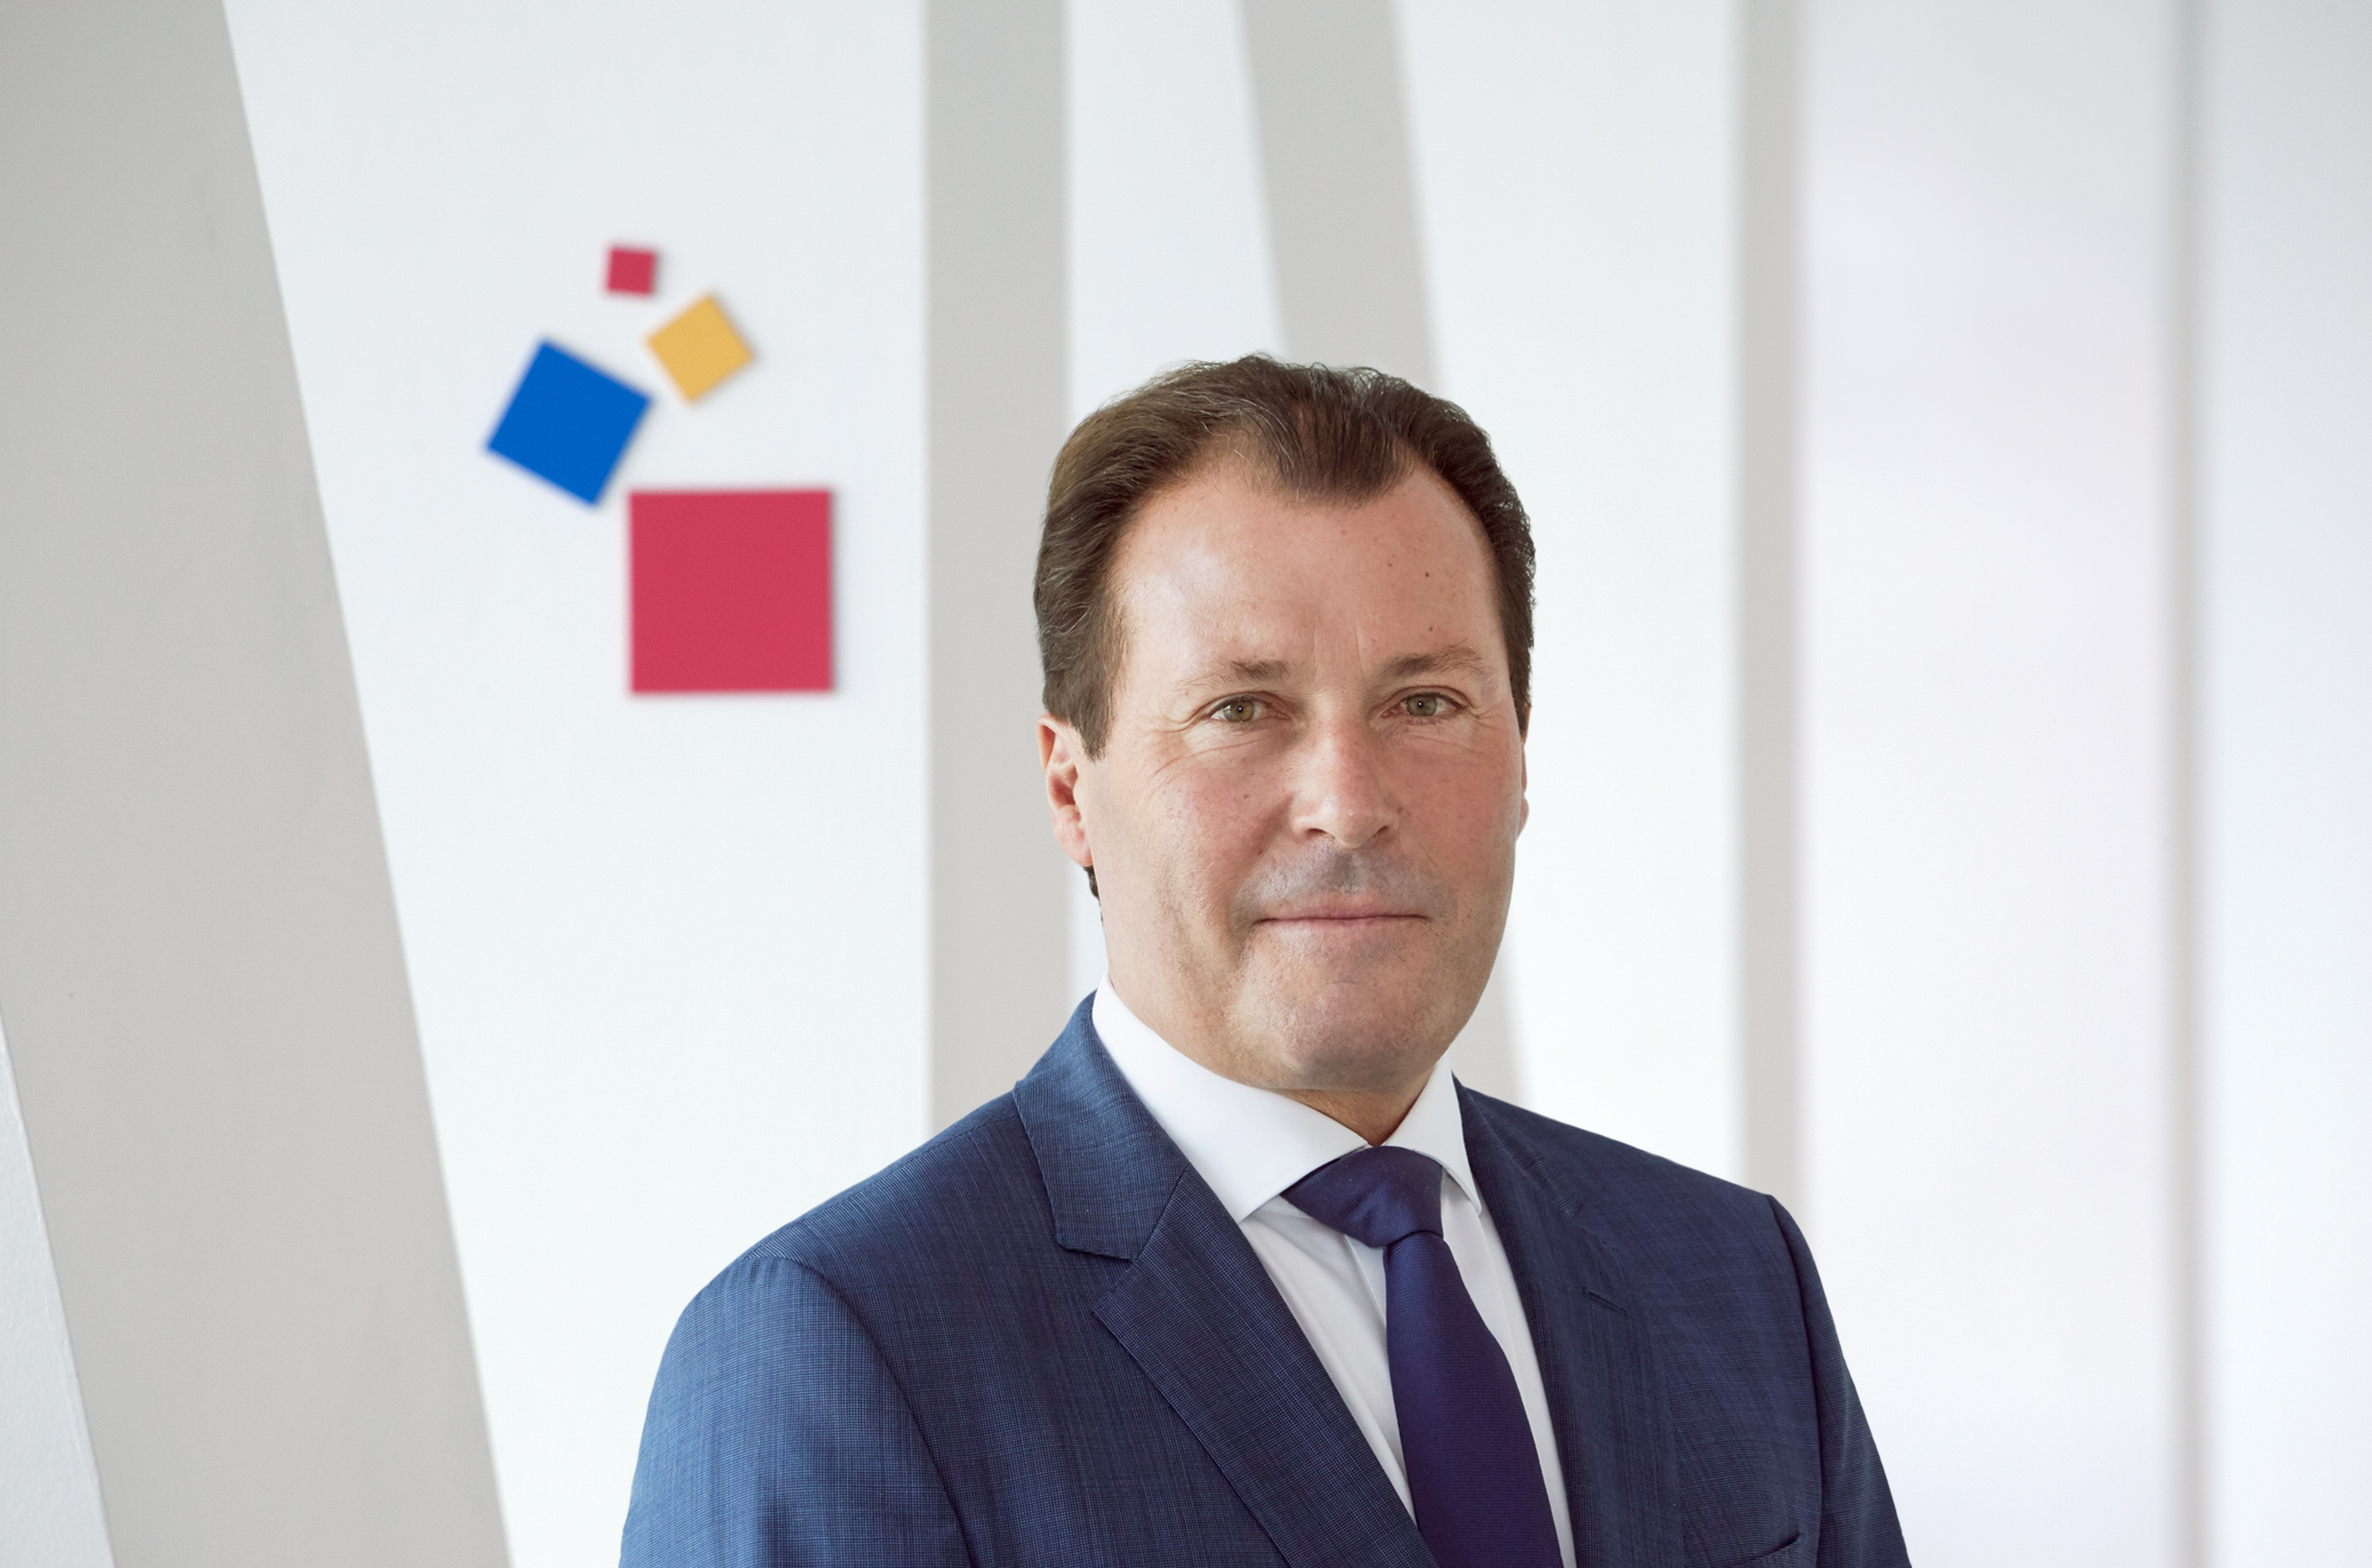 Wolfgang Marzin, President and CEO of Messe Frankfurt GmbH